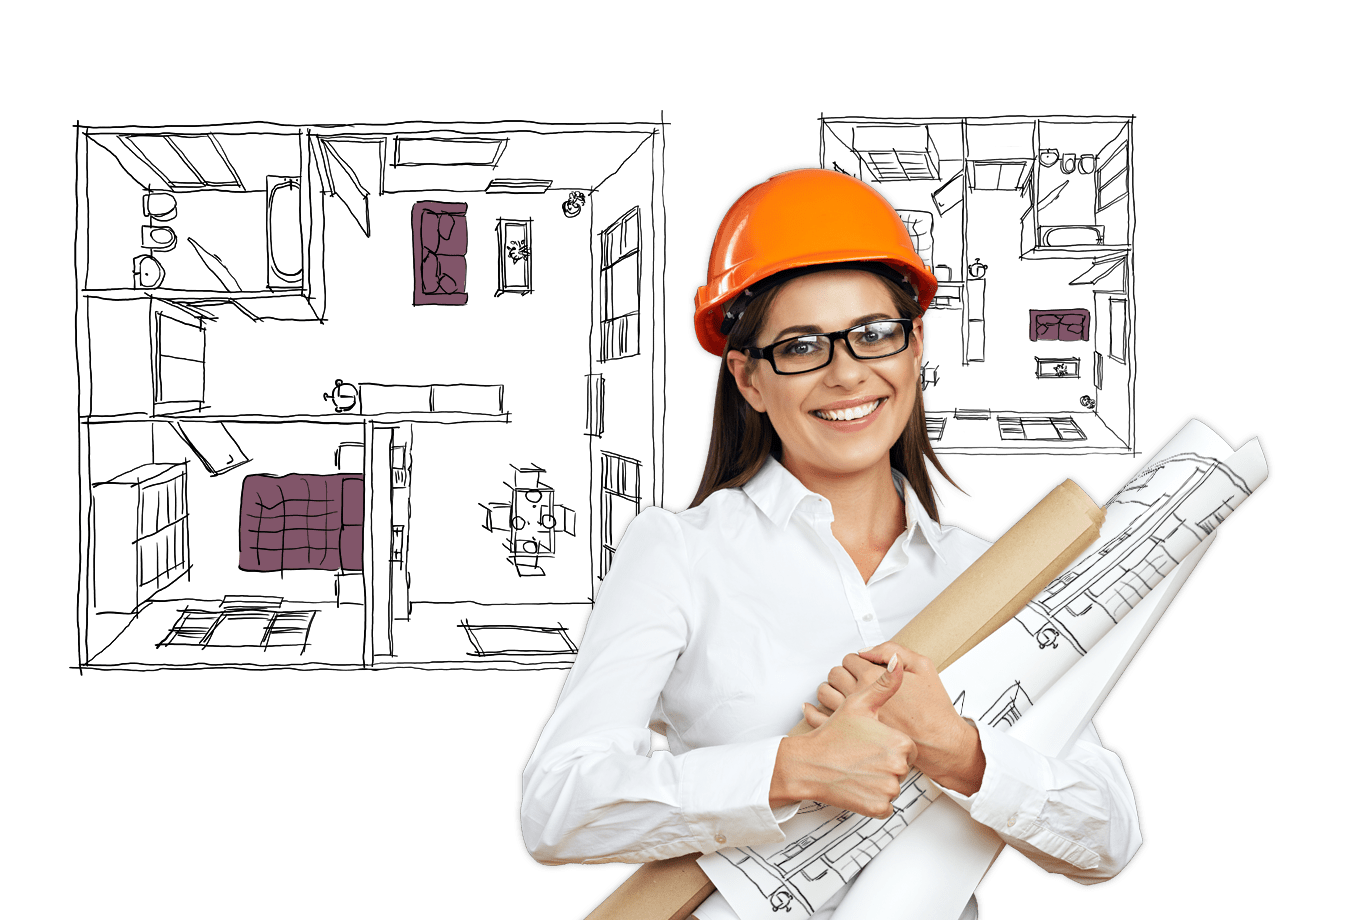 architect insurance illustration of architect holding blueprints